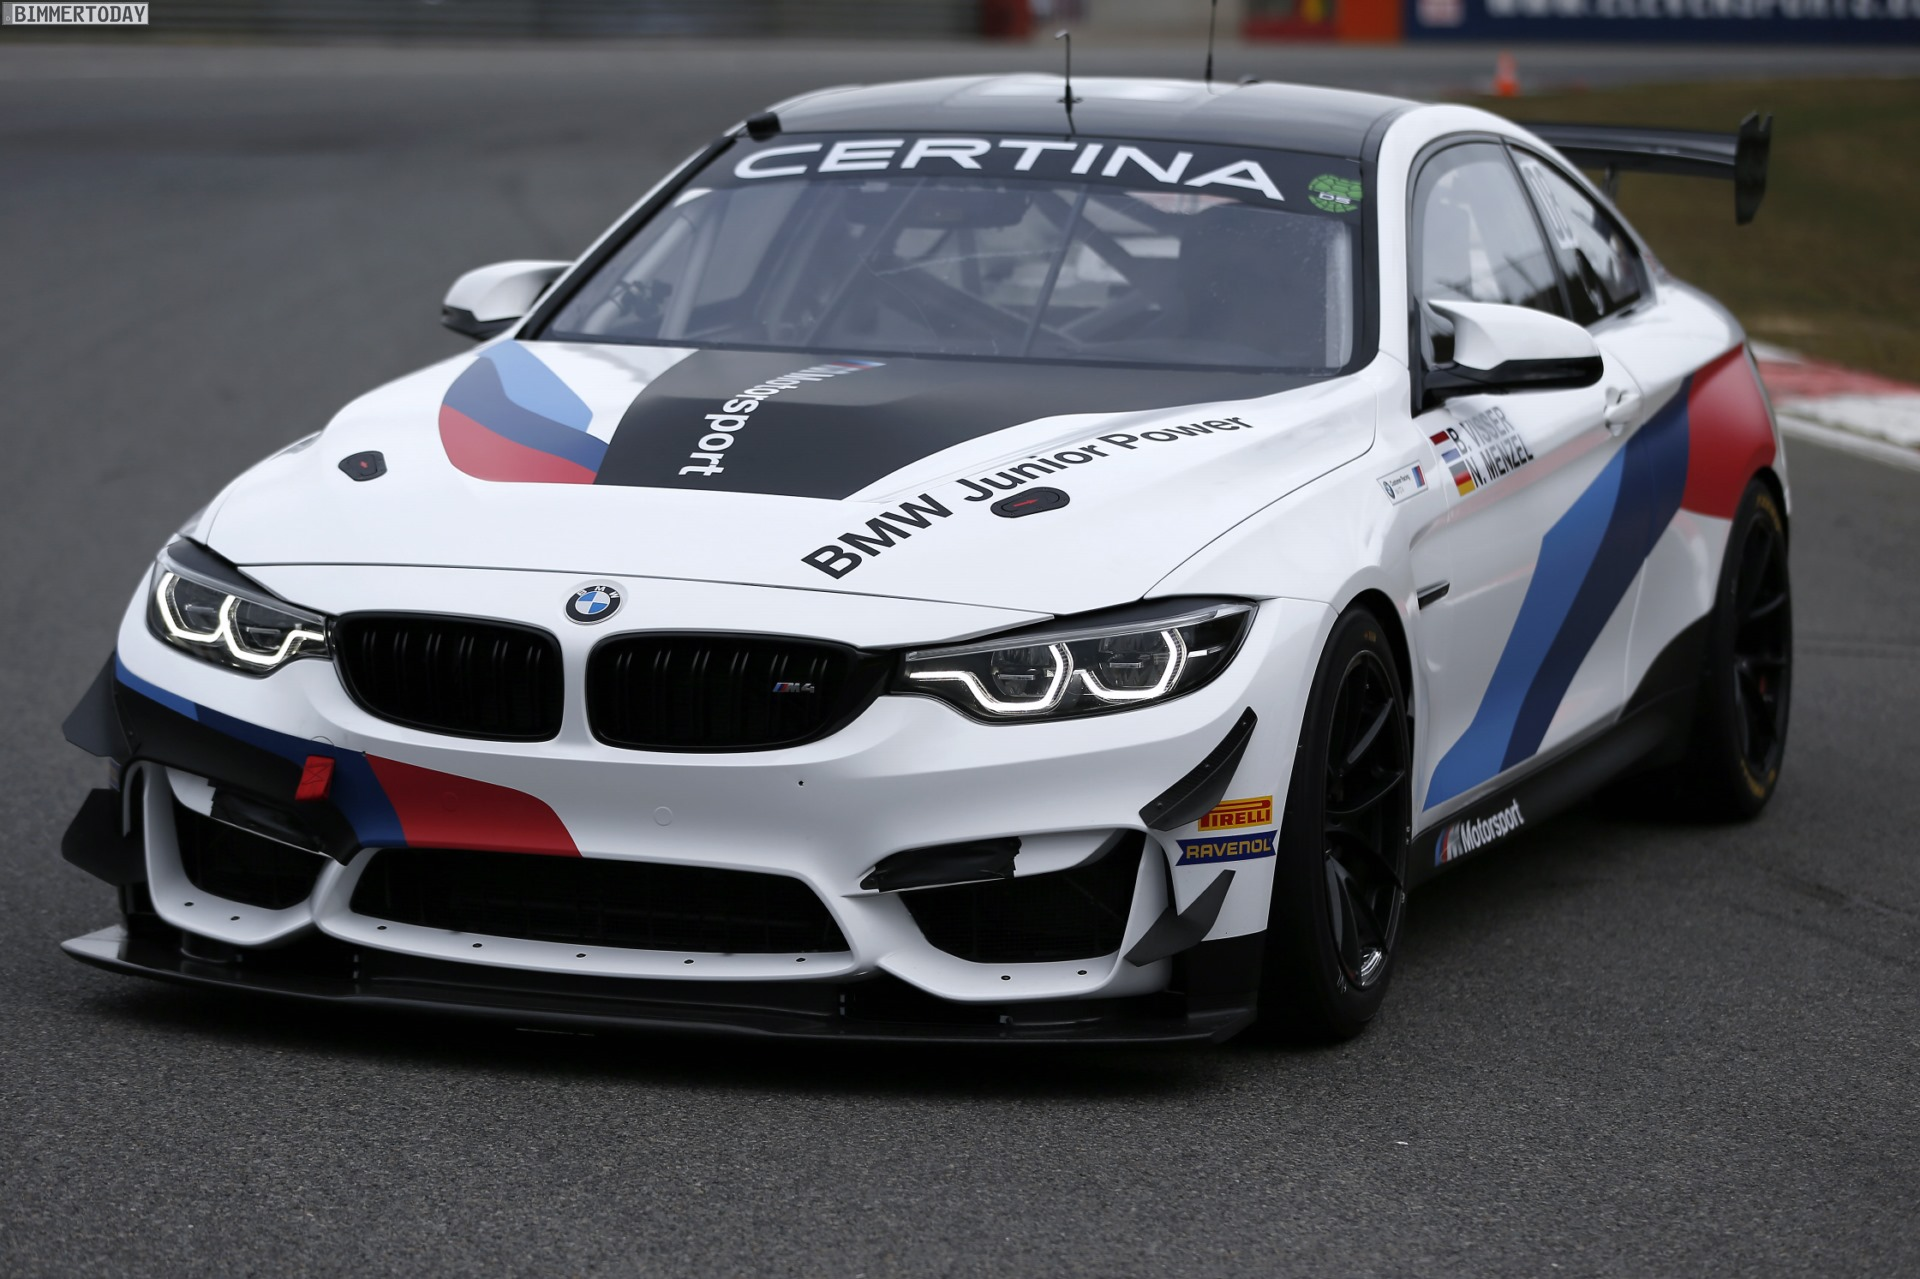 Bmw M4 Gt4 Bmw Motorsport Junioren In Der European Series